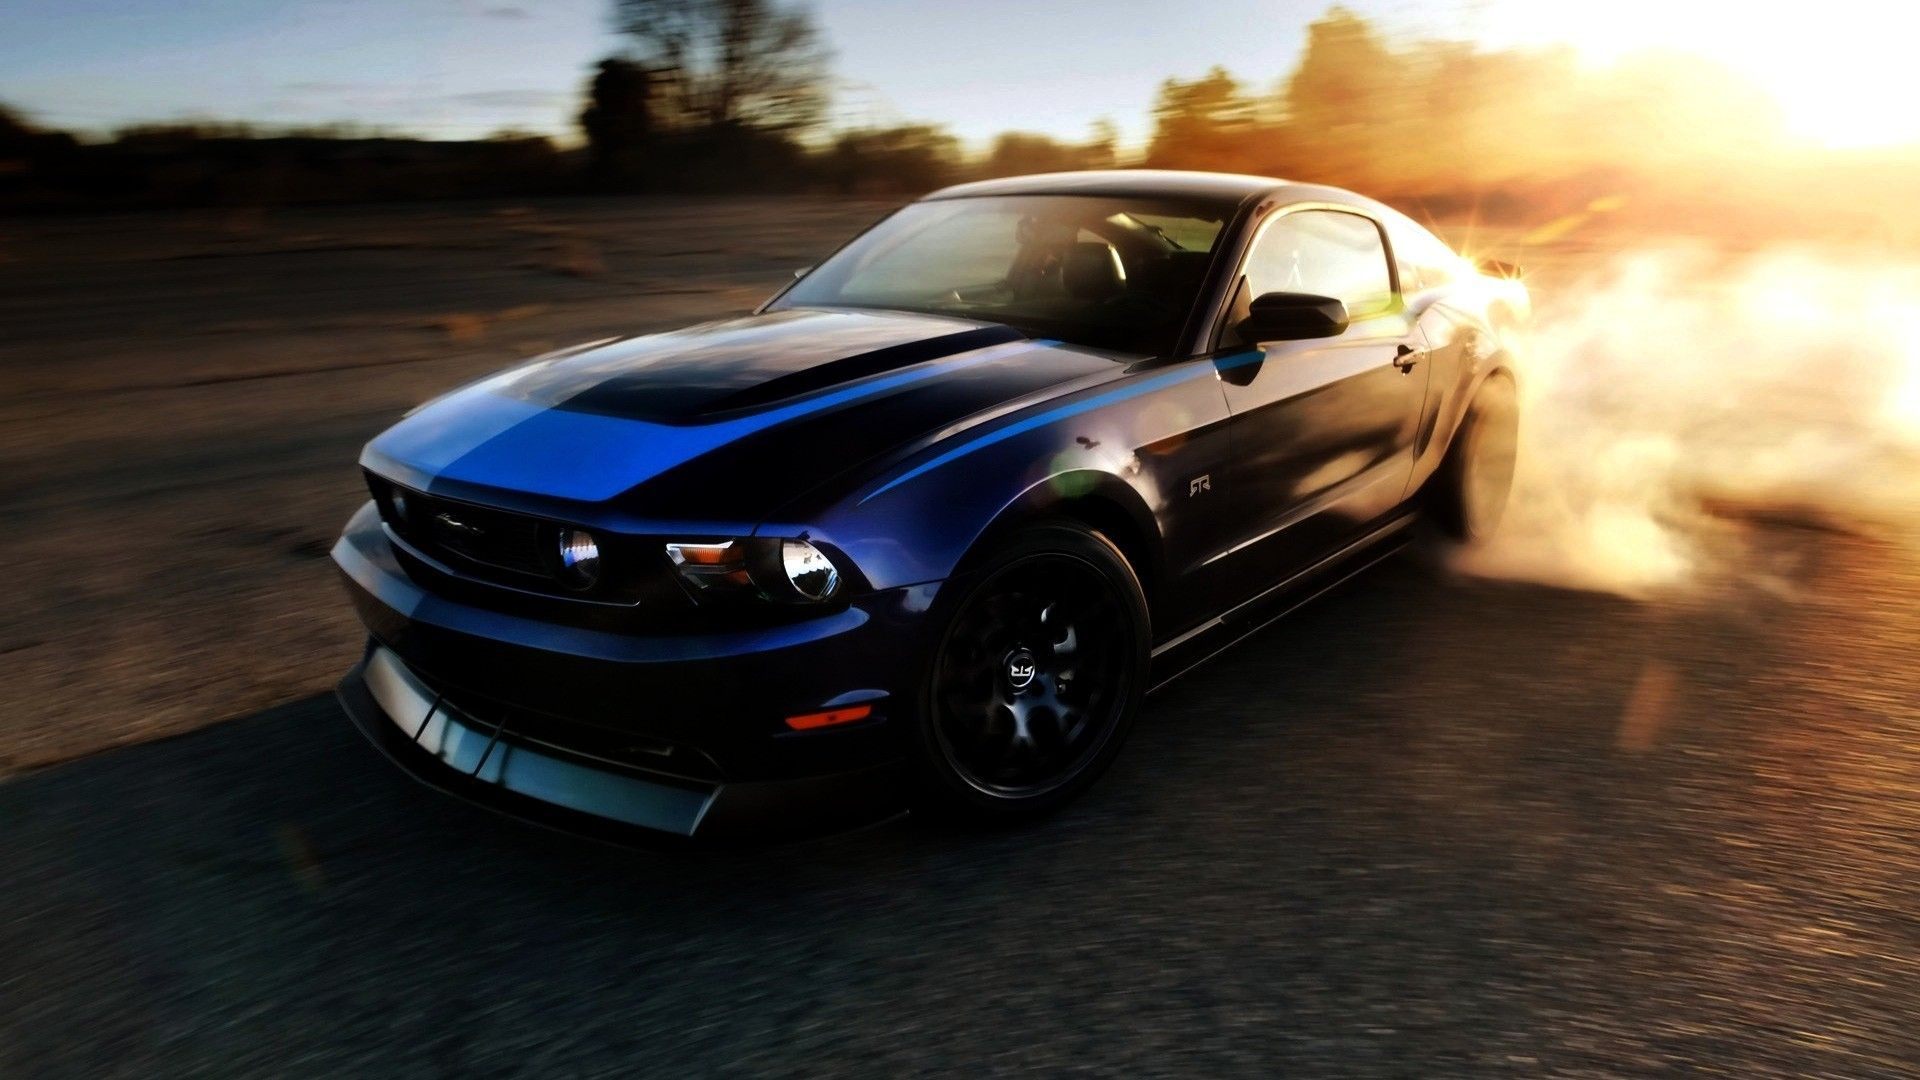 Pin By Cool Wallpapers On Mustangs Ford Mustang Wallpaper Mustang Drift Ford Mustang